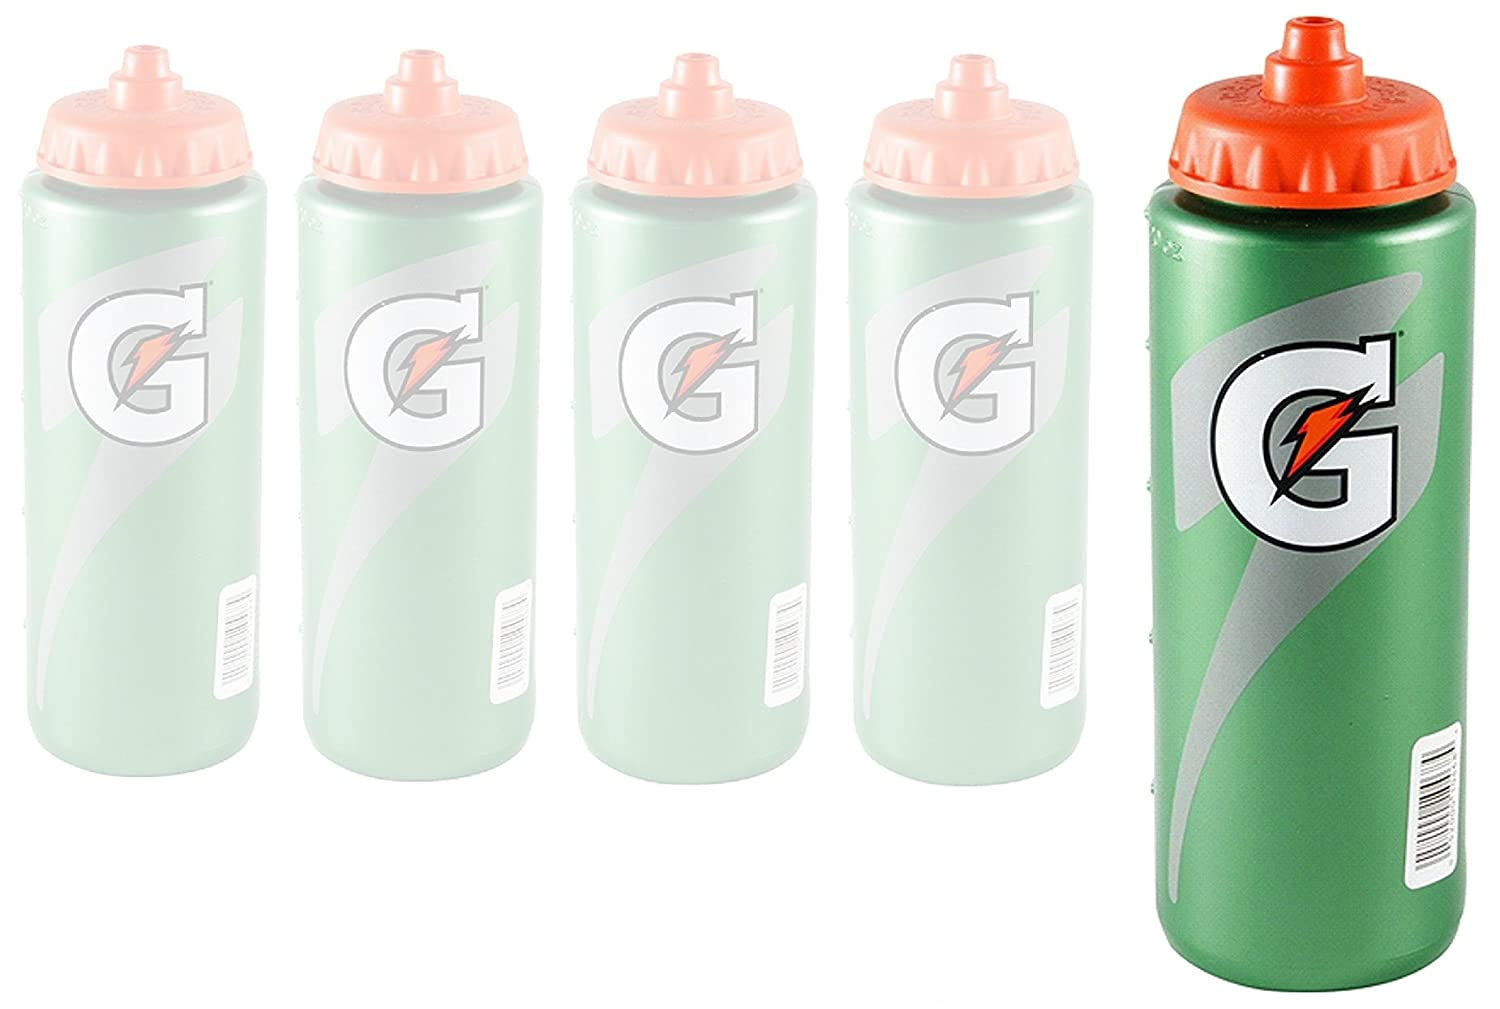 a992d48002 Amazon.com : Gatorade Squeeze Bottle, G Series, 20oz (5 Pack) : Sports &  Outdoors